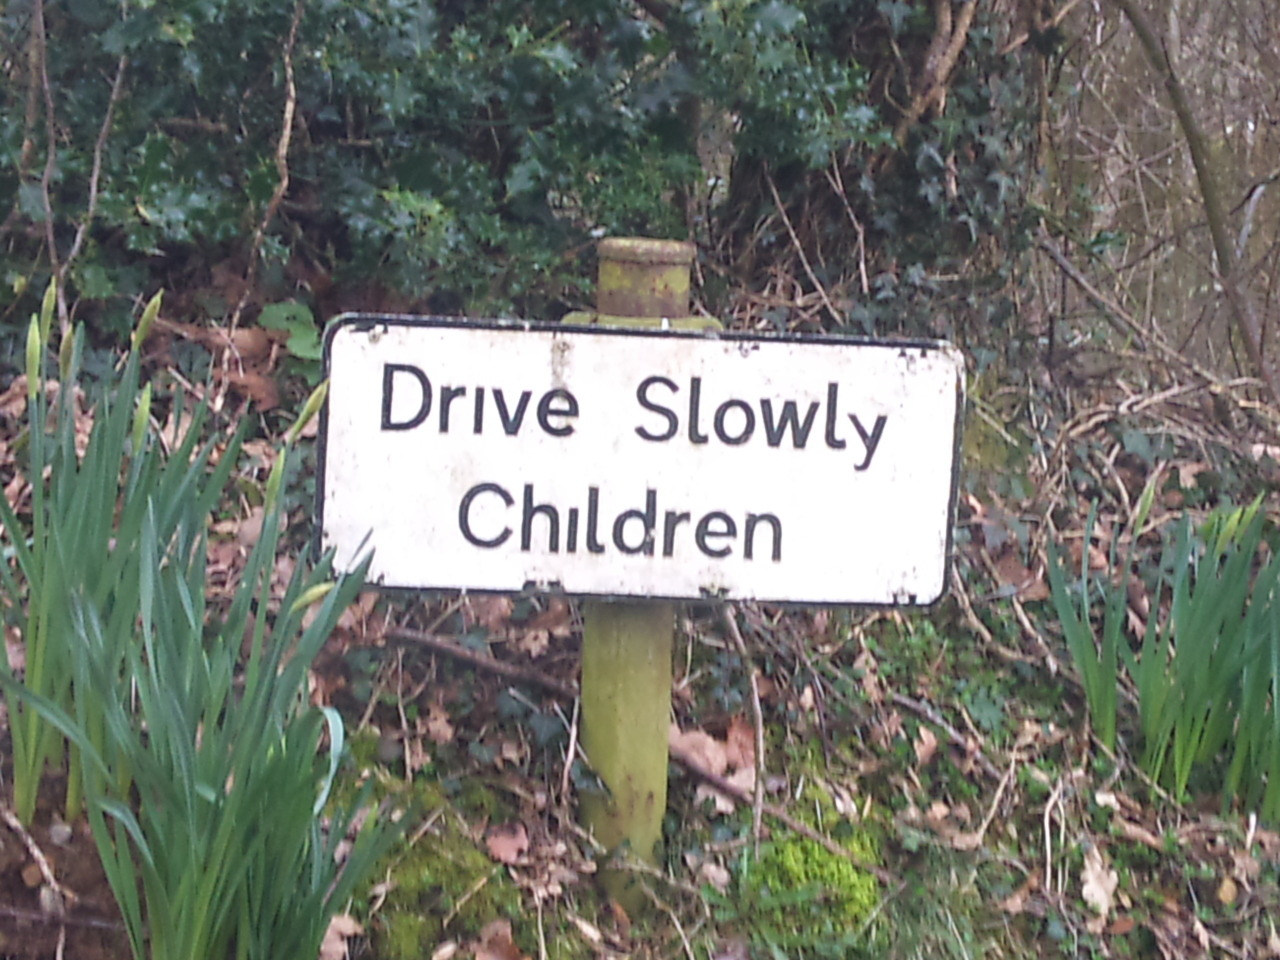 But adults can drive as fast as they like…